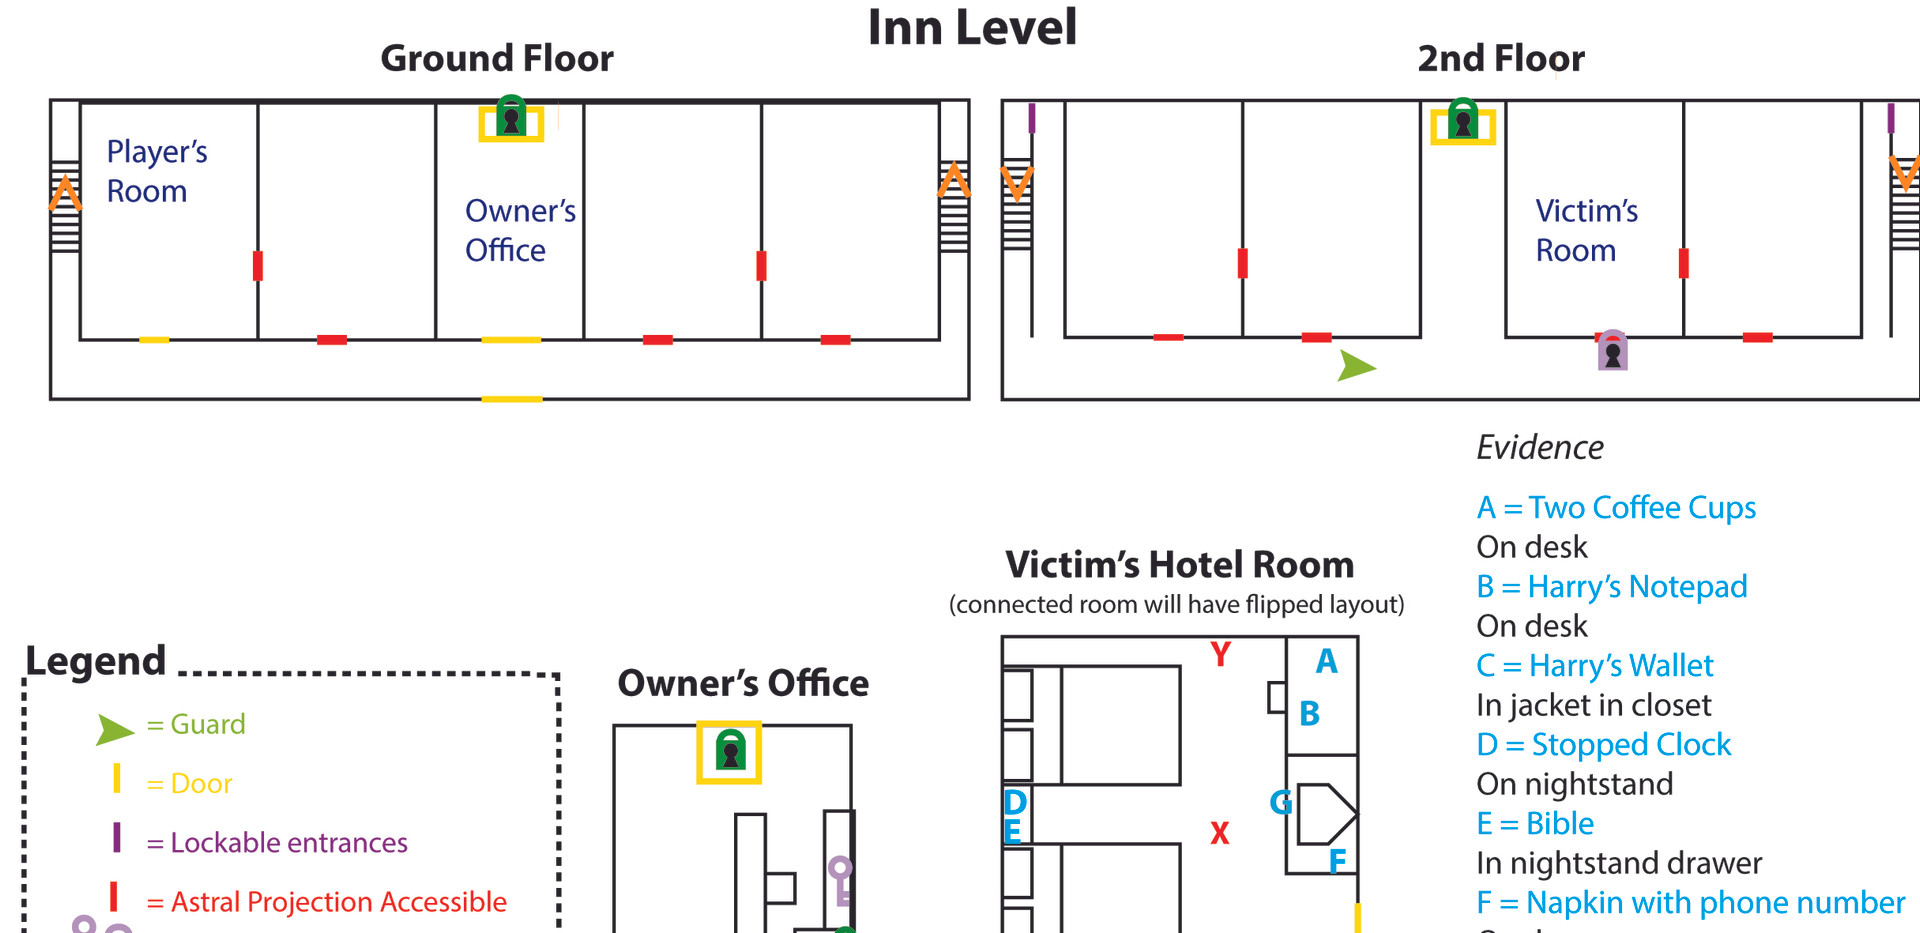 Inn Level Design Diagram